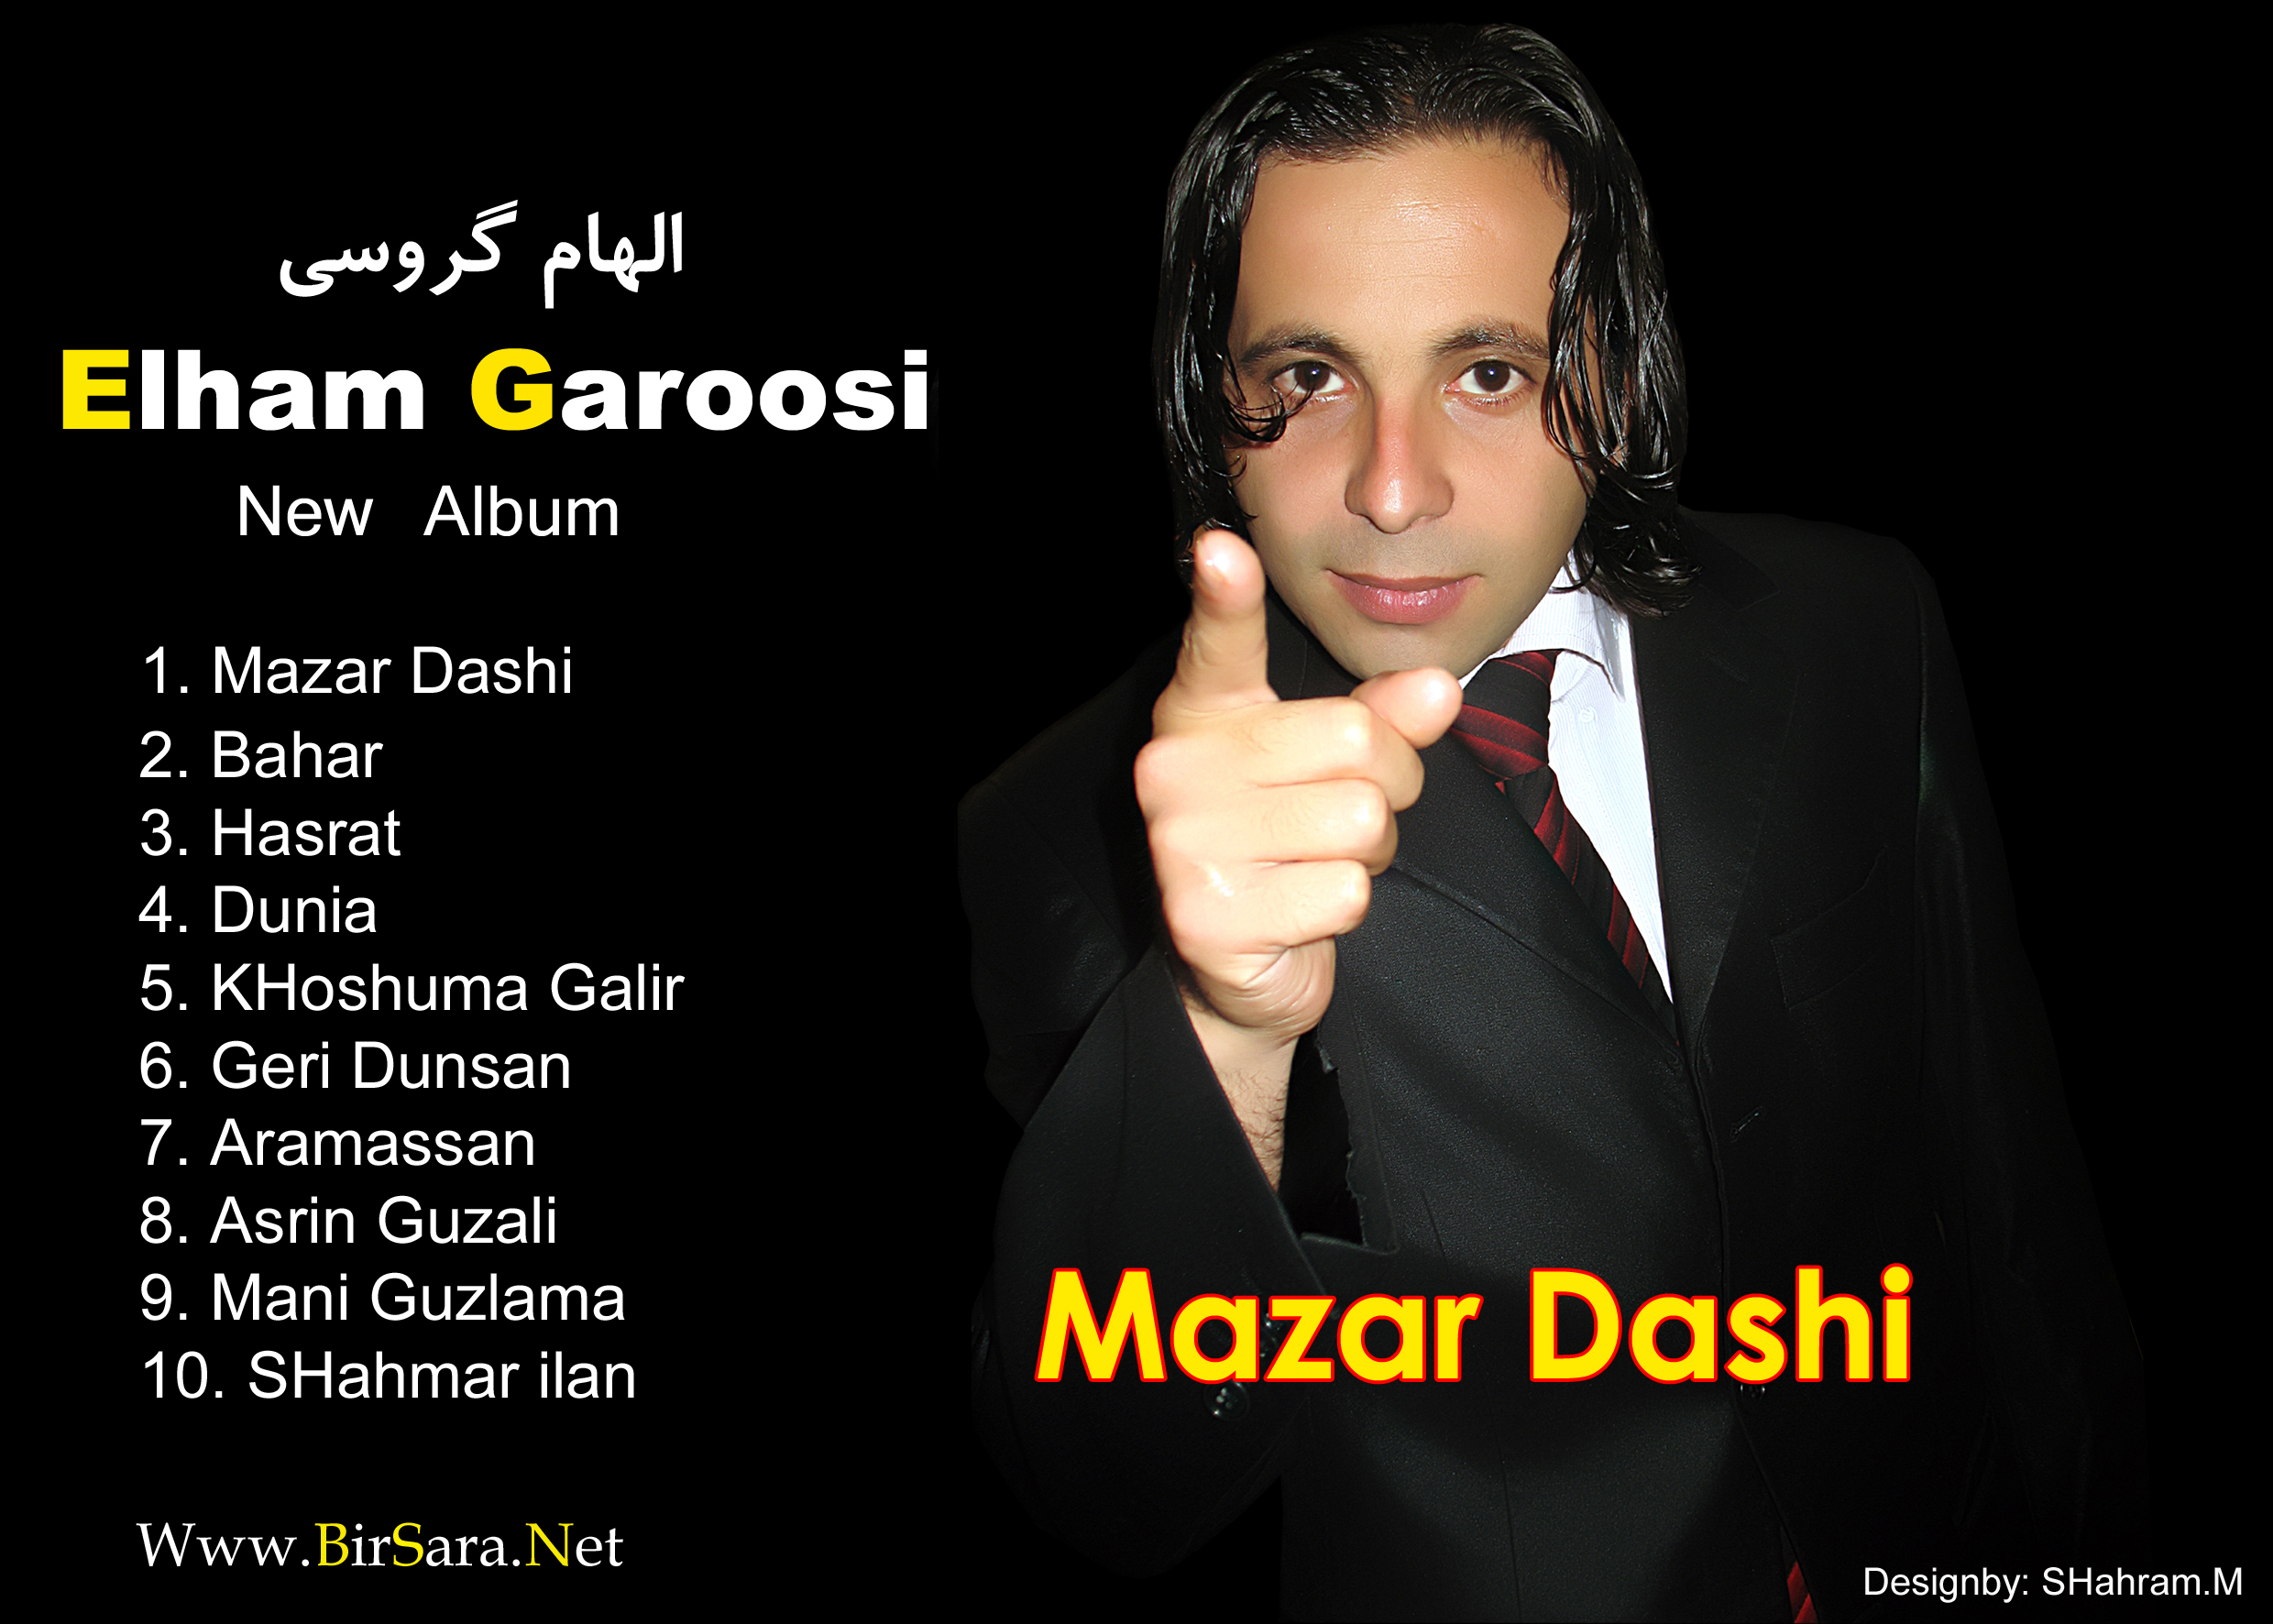 http://cdn.persiangig.com/preview/UhMMSGt4O8/ArazMusic98.IR.jpg